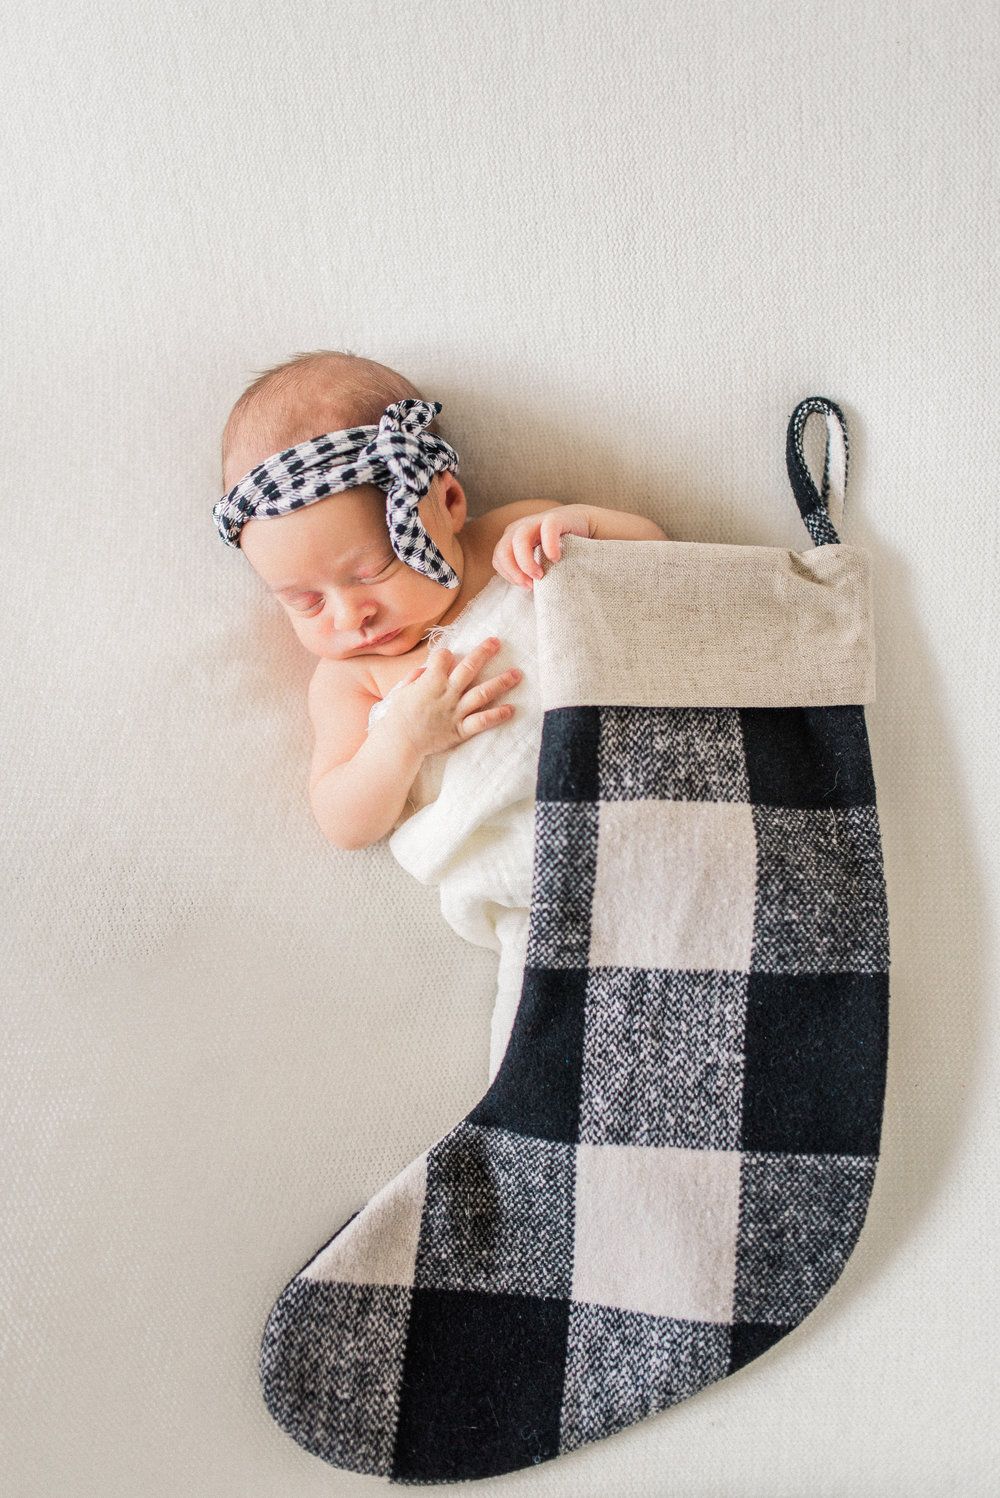 Brynna | Sentimental & Sweet Newborn Photography | Noblesville, IN